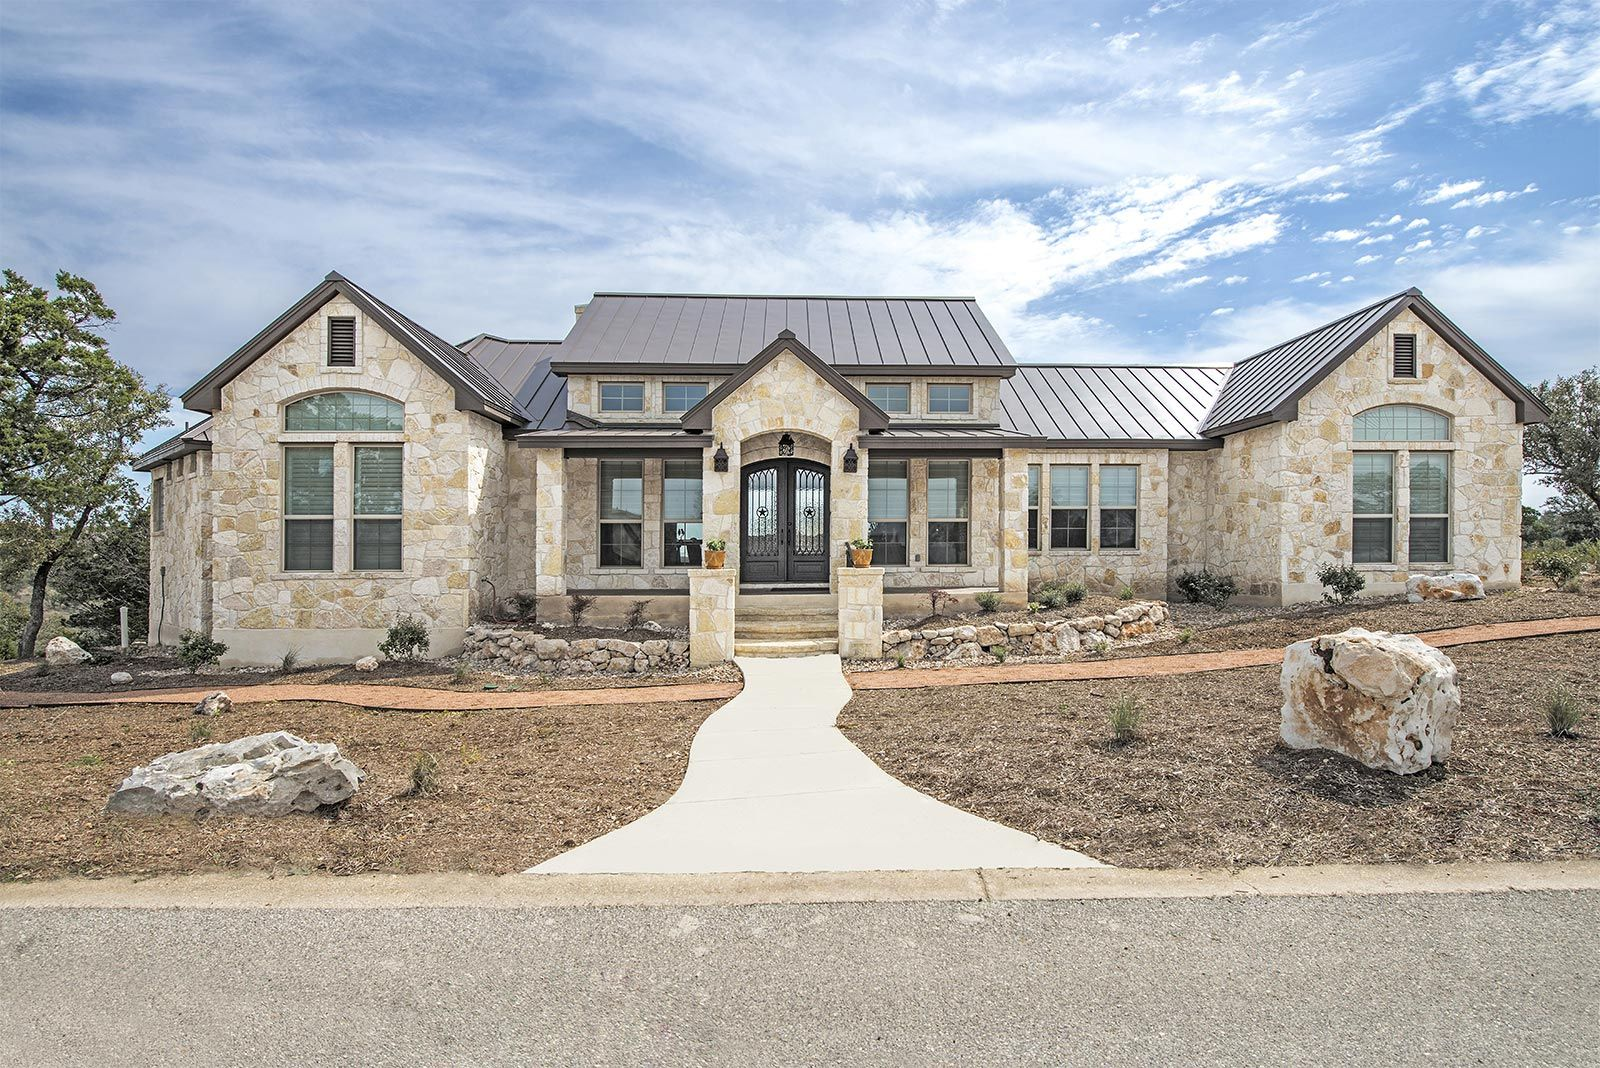 Front Elevations Custom Home Builder San Antonio Robare Custom Homes Country Home Exteriors Hill Country Homes Country House Design